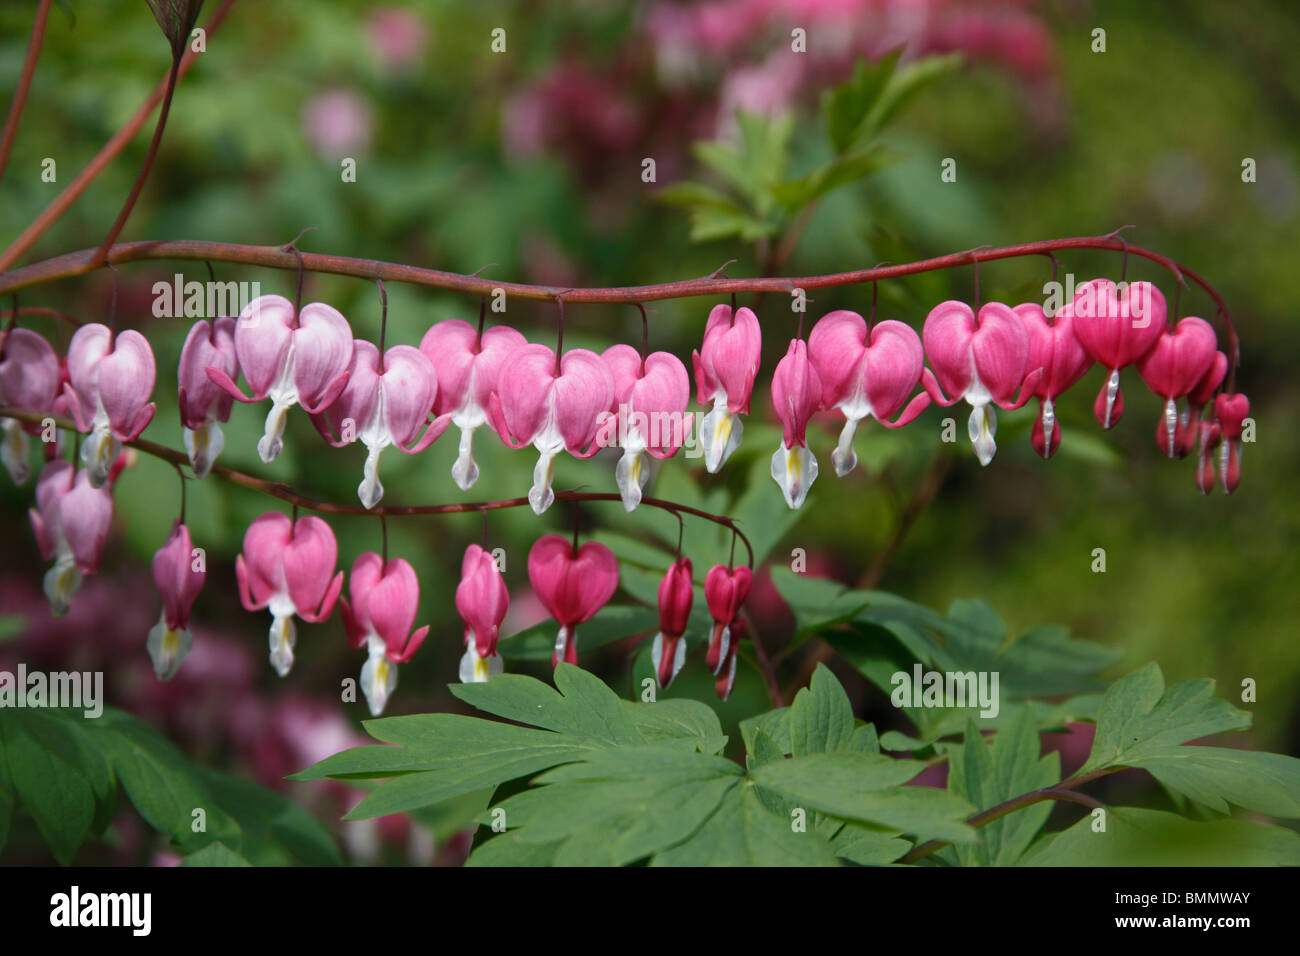 Bleeding heart (Dicentra spectabilis) close up of flowers - Stock Image